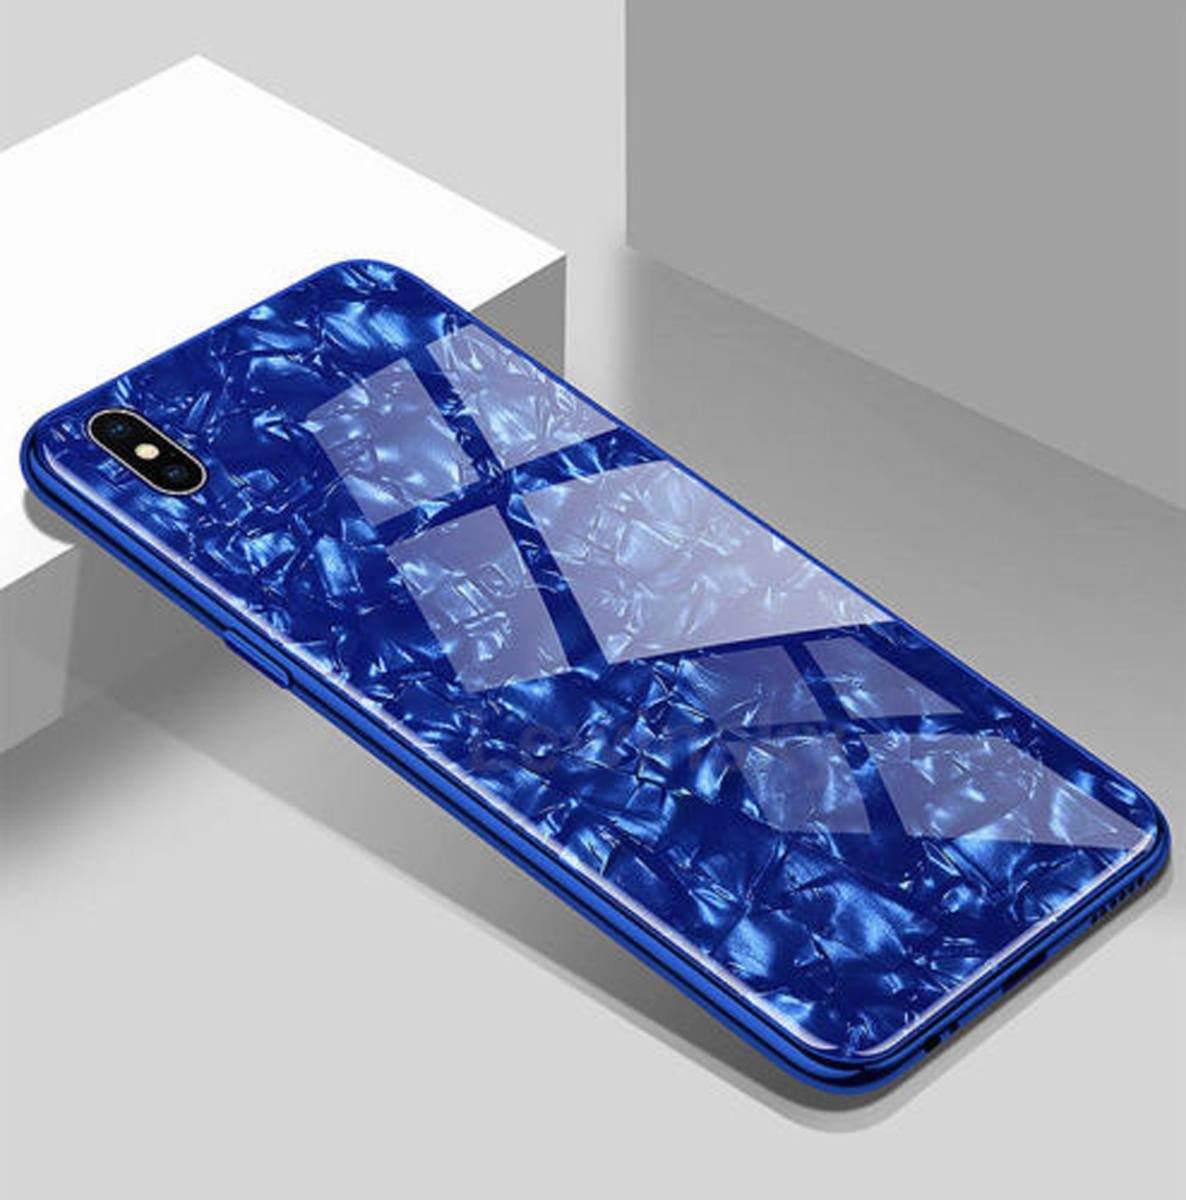 Luxury-Marble-Tempered-Glass-Case-Cover-For-Apple-iPhone-X-XS-XR-Max-10-8-7-6s-6 thumbnail 41